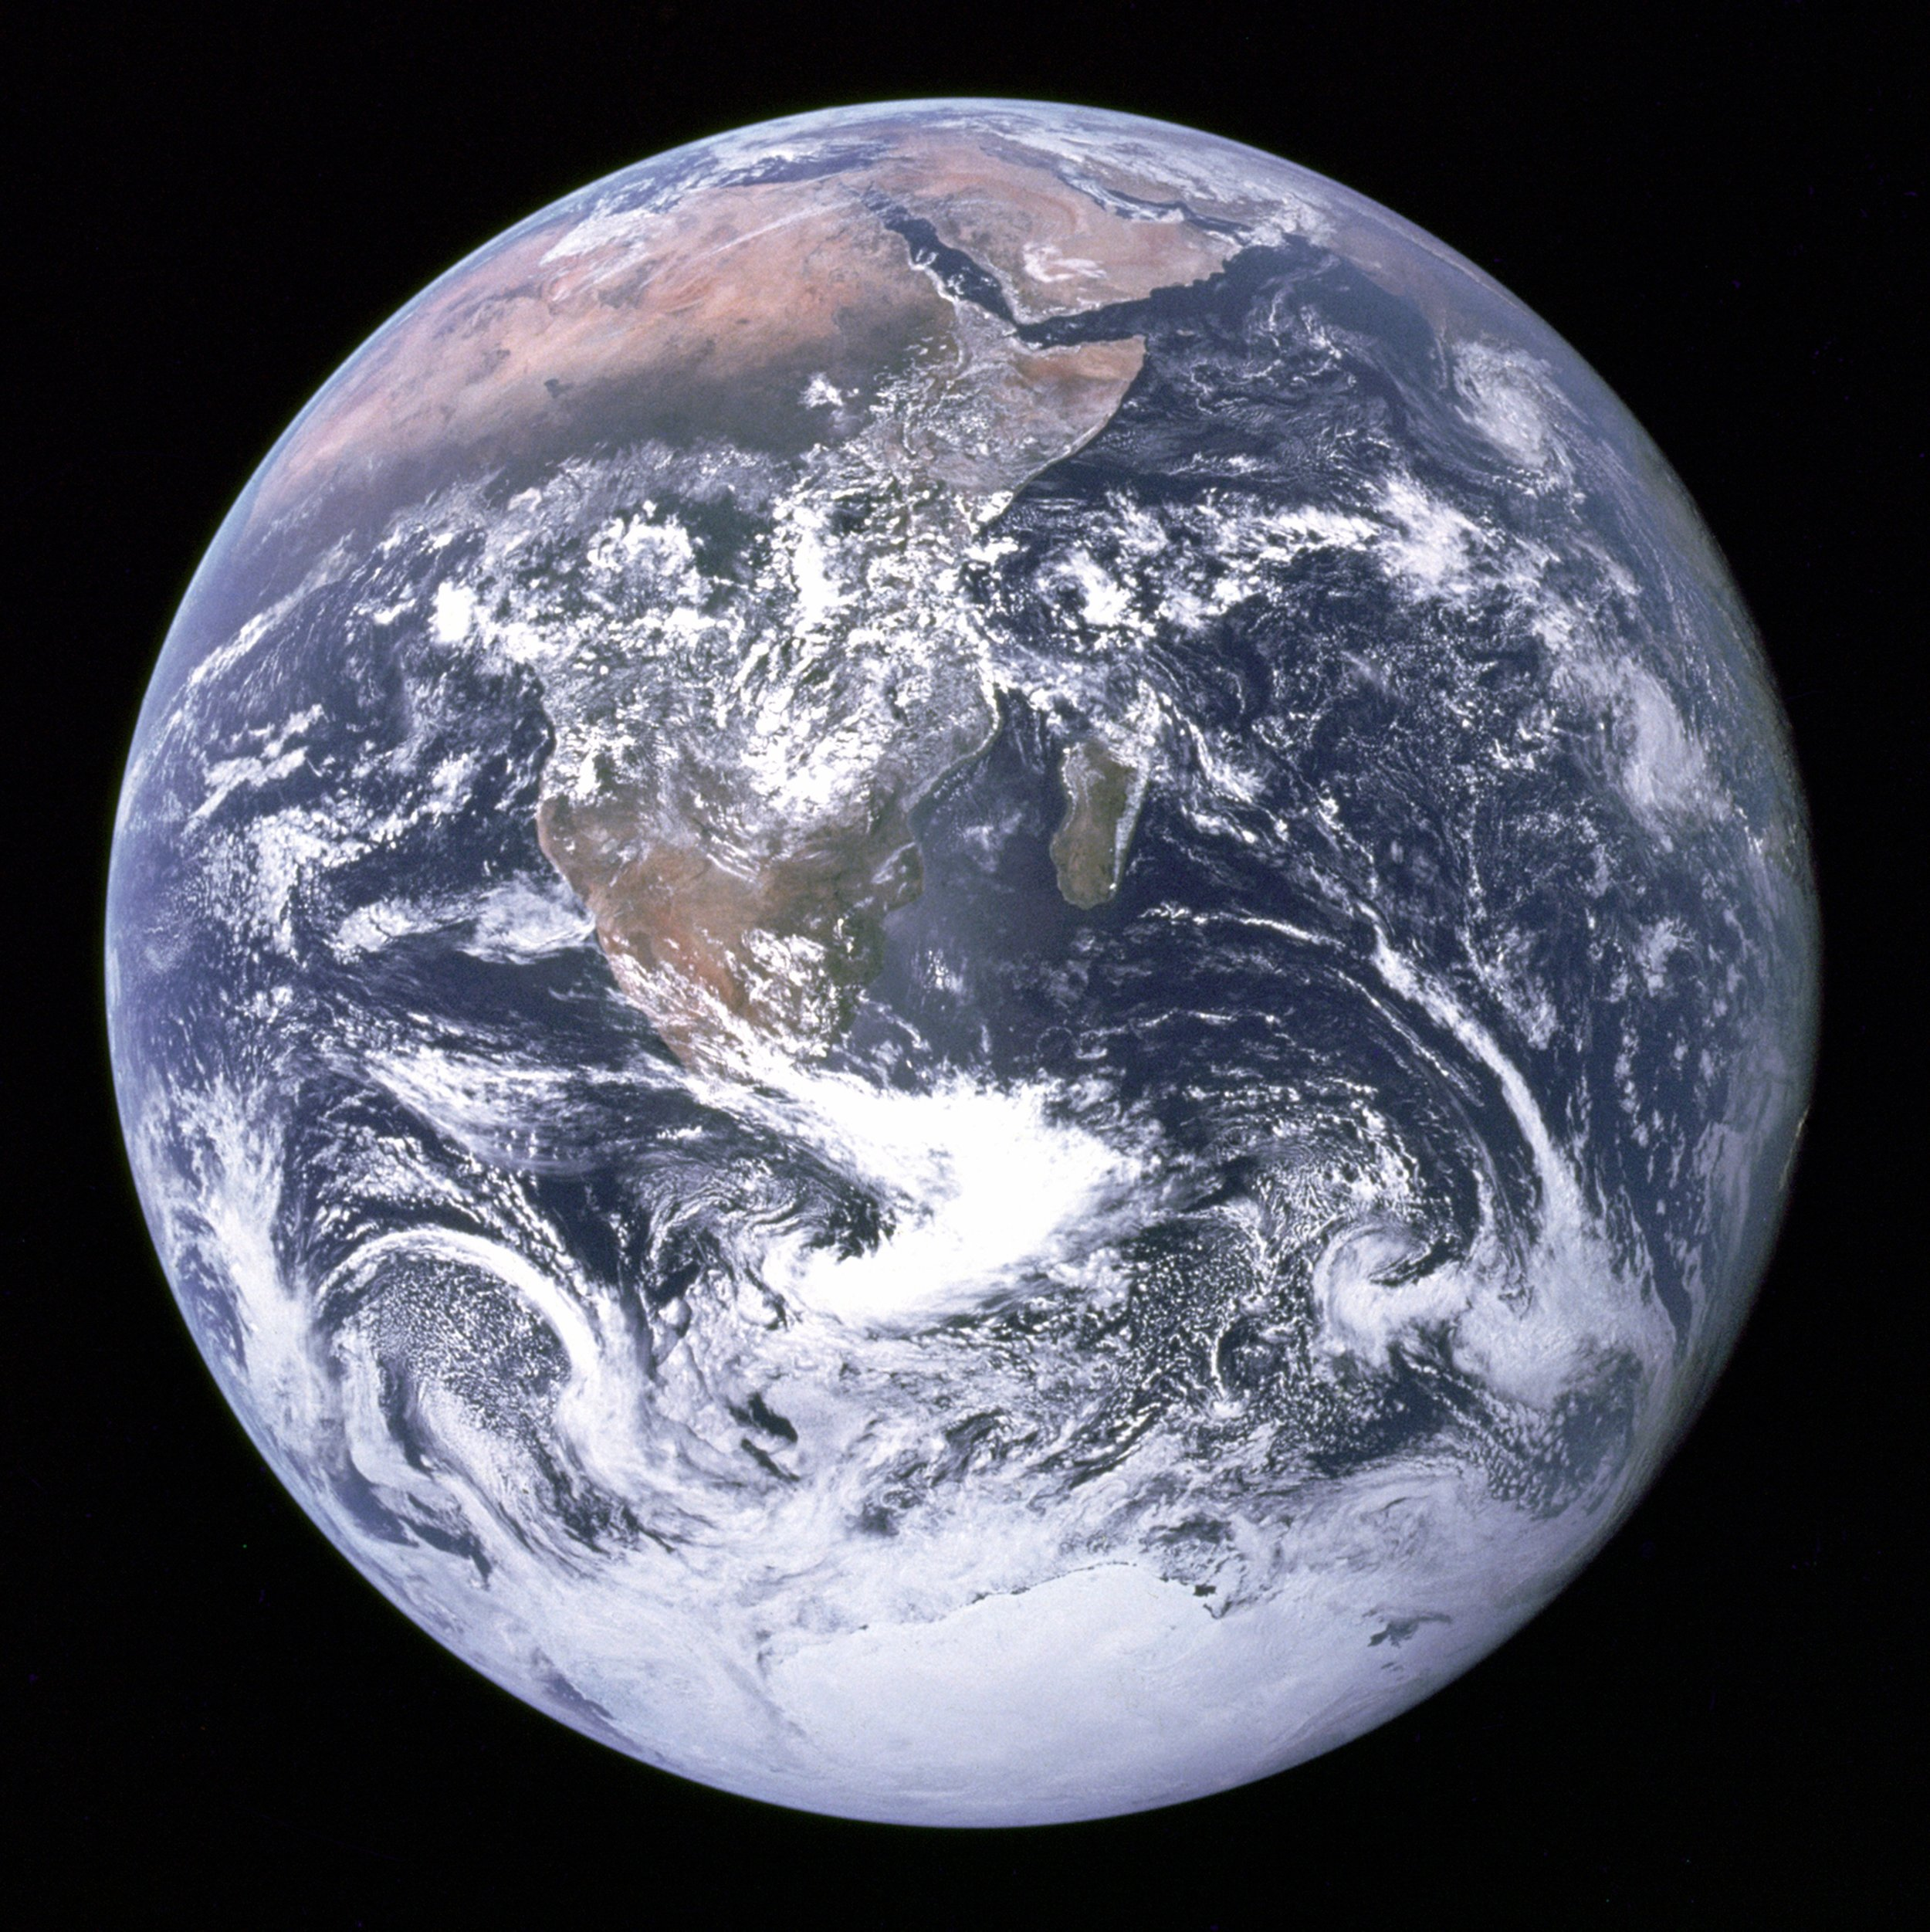 "The last time human beings were far enough away from Earth to see the entire planet at once was December 7, 1972. That's when the crew of Apollo 17 captured this photograph, which we now call ""The Blue Marble."" For obvious reasons, today's celebration of #EarthDay is one of the most meaningful days of the year for our team. We look forward to another year of searching for and sharing these vast perspectives with you -- to inspire the powerful awe that comes when you experience the Overview Effect. We continue to believe that if we can wonder in these view more often, we'll do what's right and what's necessary to protect our one and only home.  Source imagery: NASA - National Aeronautics and Space Administration"